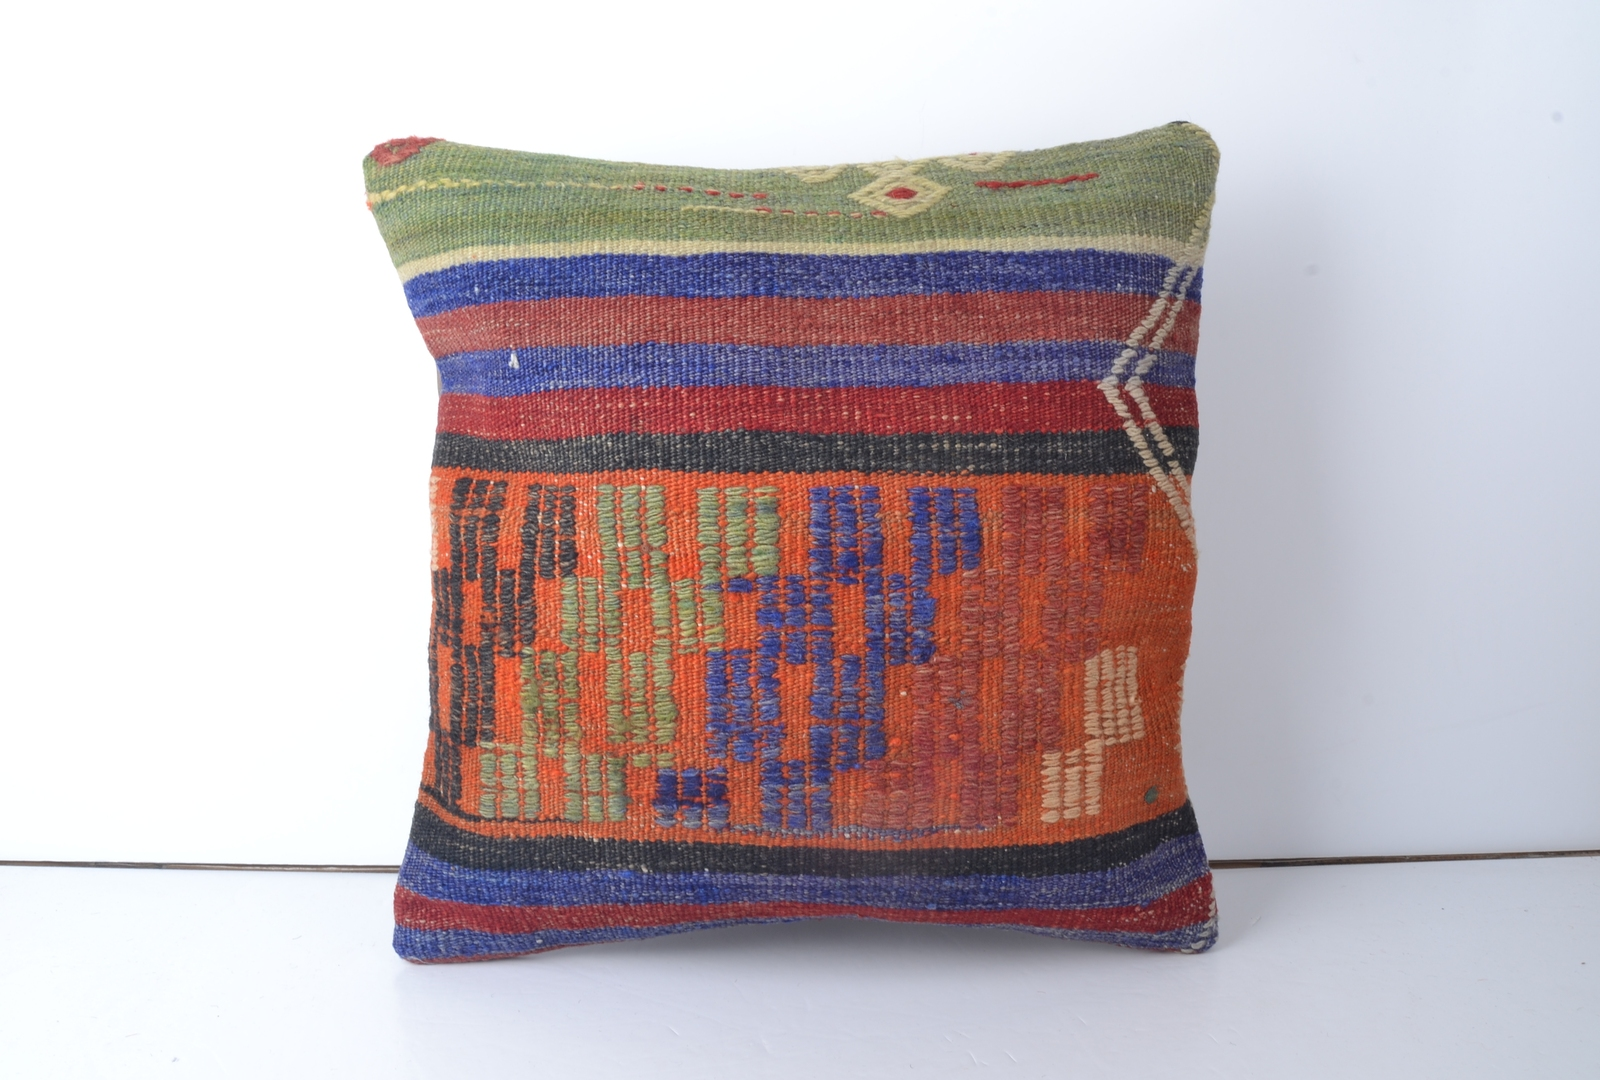 Eclectic Couch Pillows : 16 Kilim Rug Decorative Pillow Rustic throw pillow cover eclectic kilim pillow - Pillows